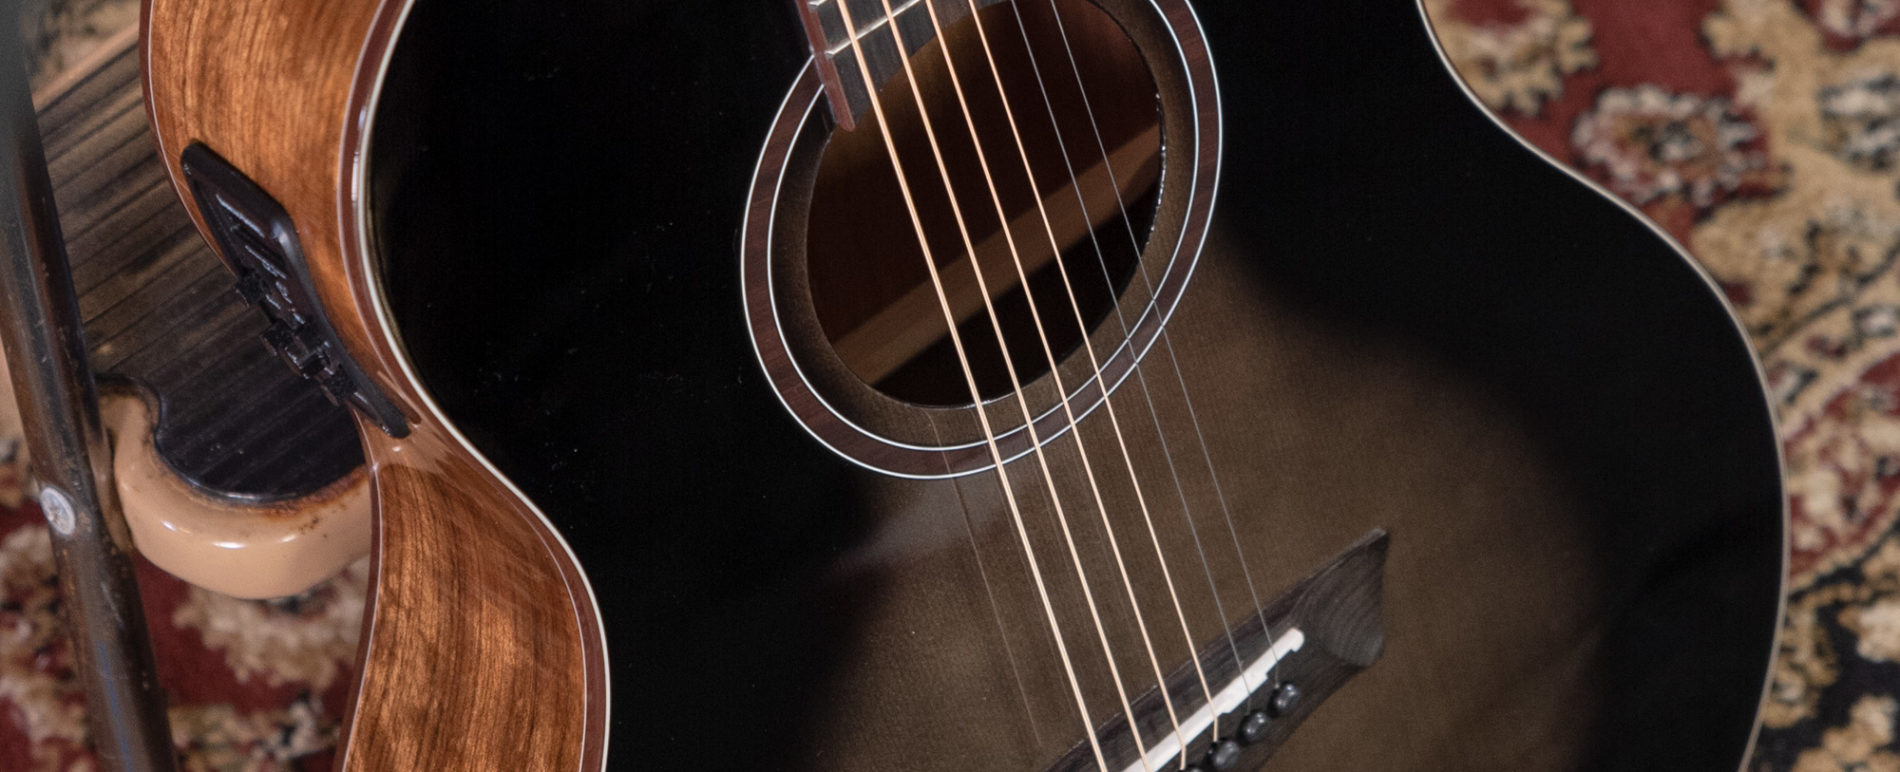 BTS9VCECH BELLA TONO VITE S9V close up of the sound hole and roseette